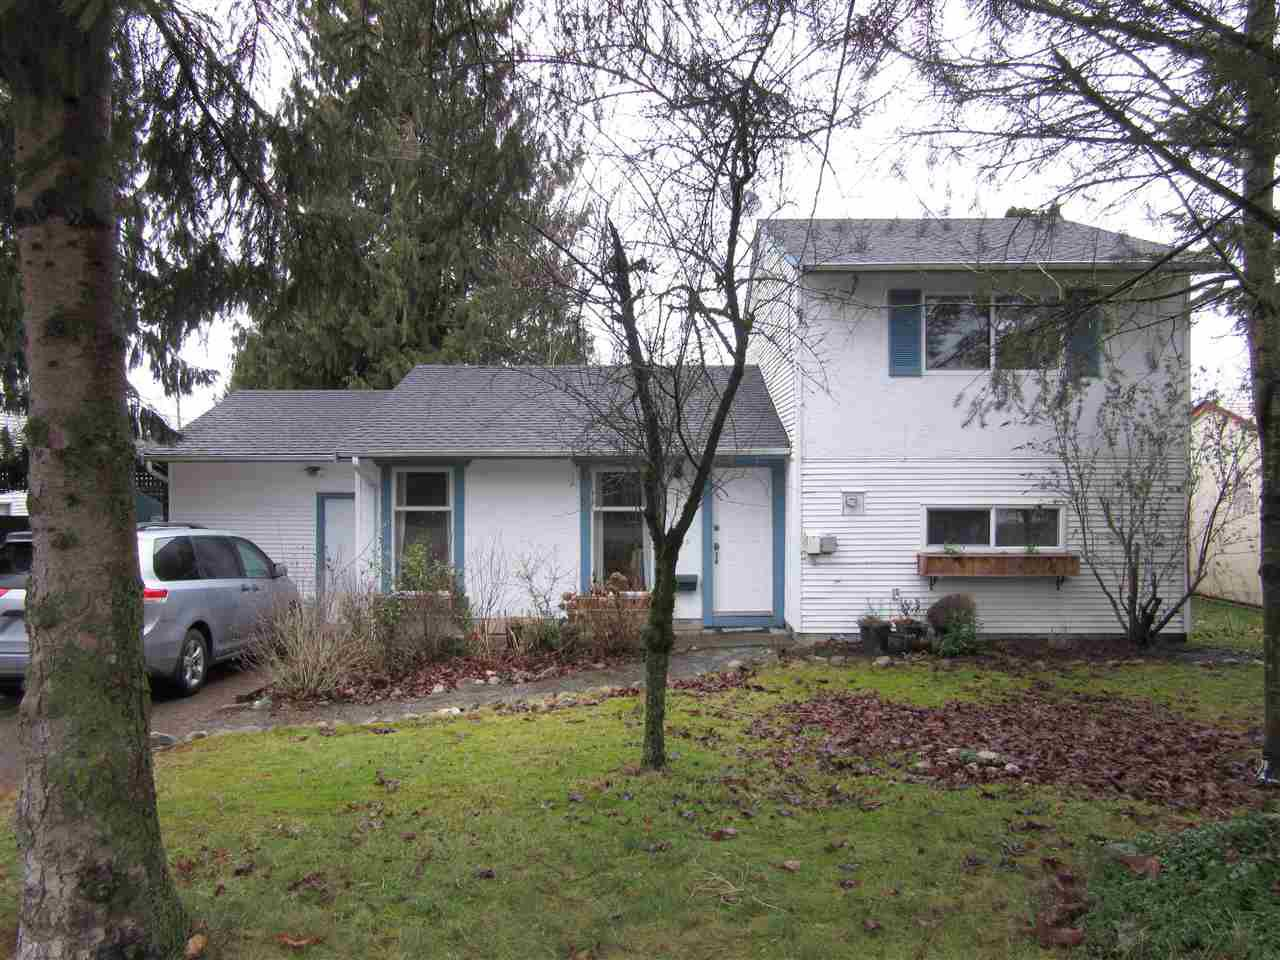 Main Photo: 26549 32 Avenue in Langley: Aldergrove Langley House for sale : MLS®# R2023163